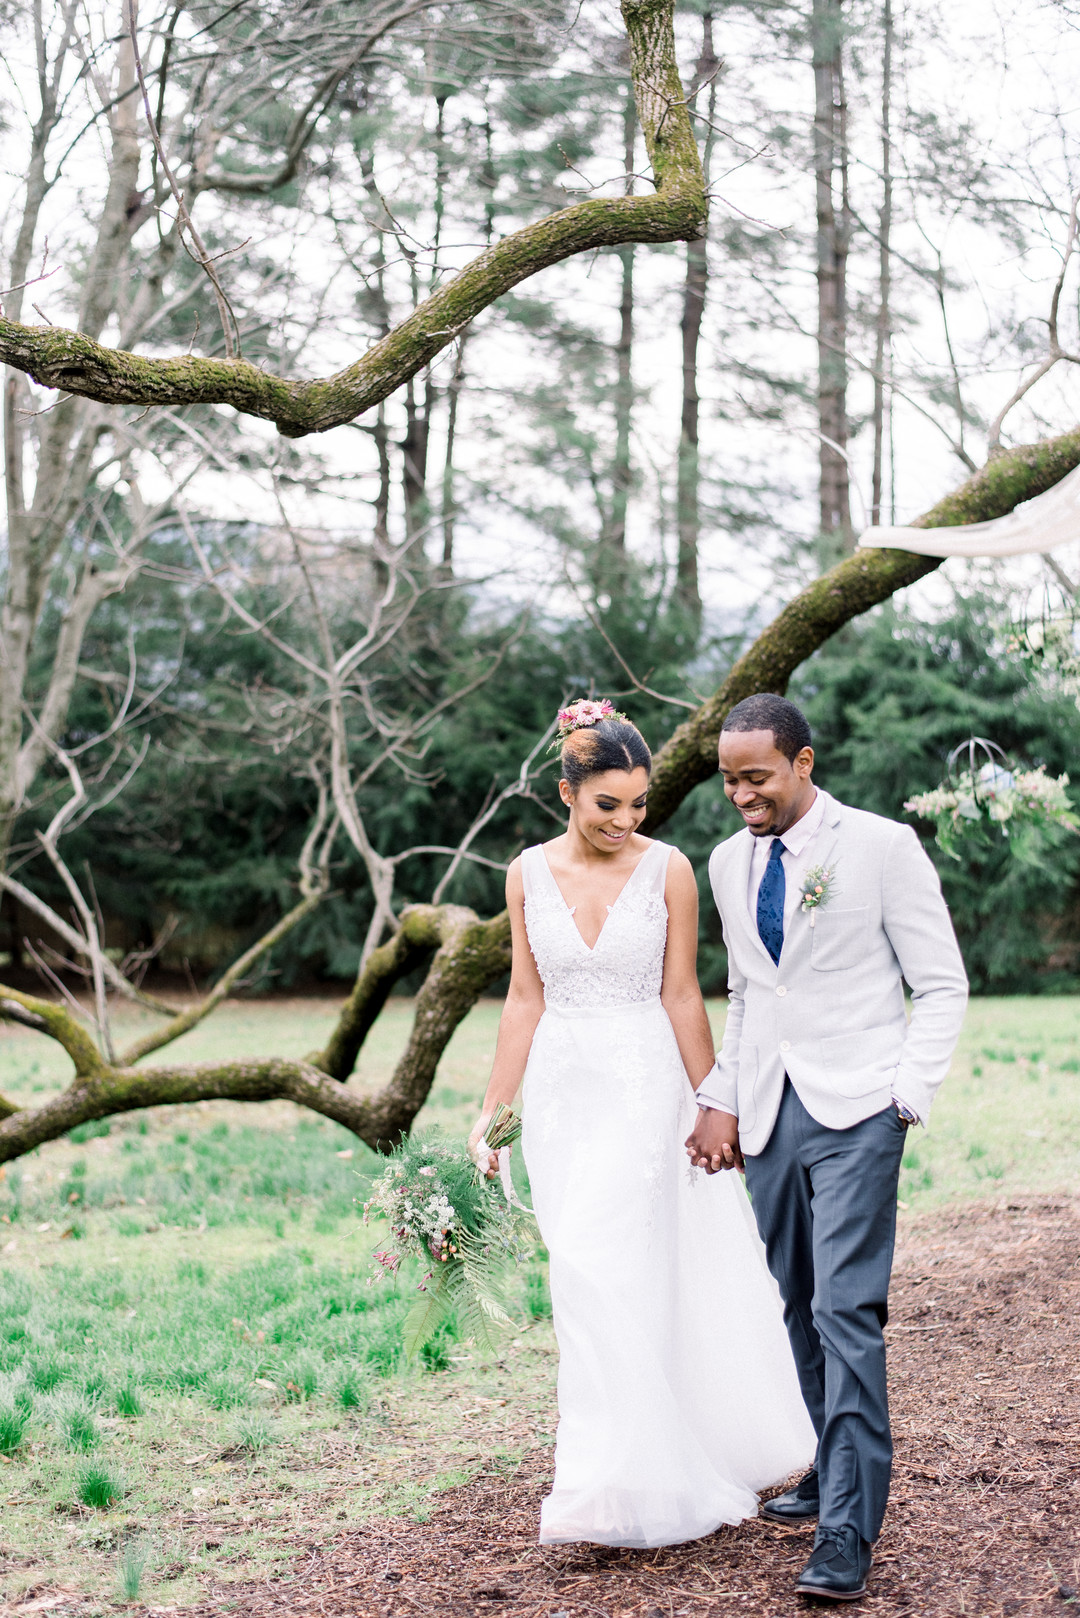 77h40ei9t8srp03d6y11_big Hot Springs, NC Wedding Inspiration at Mountain Magnolia Inn